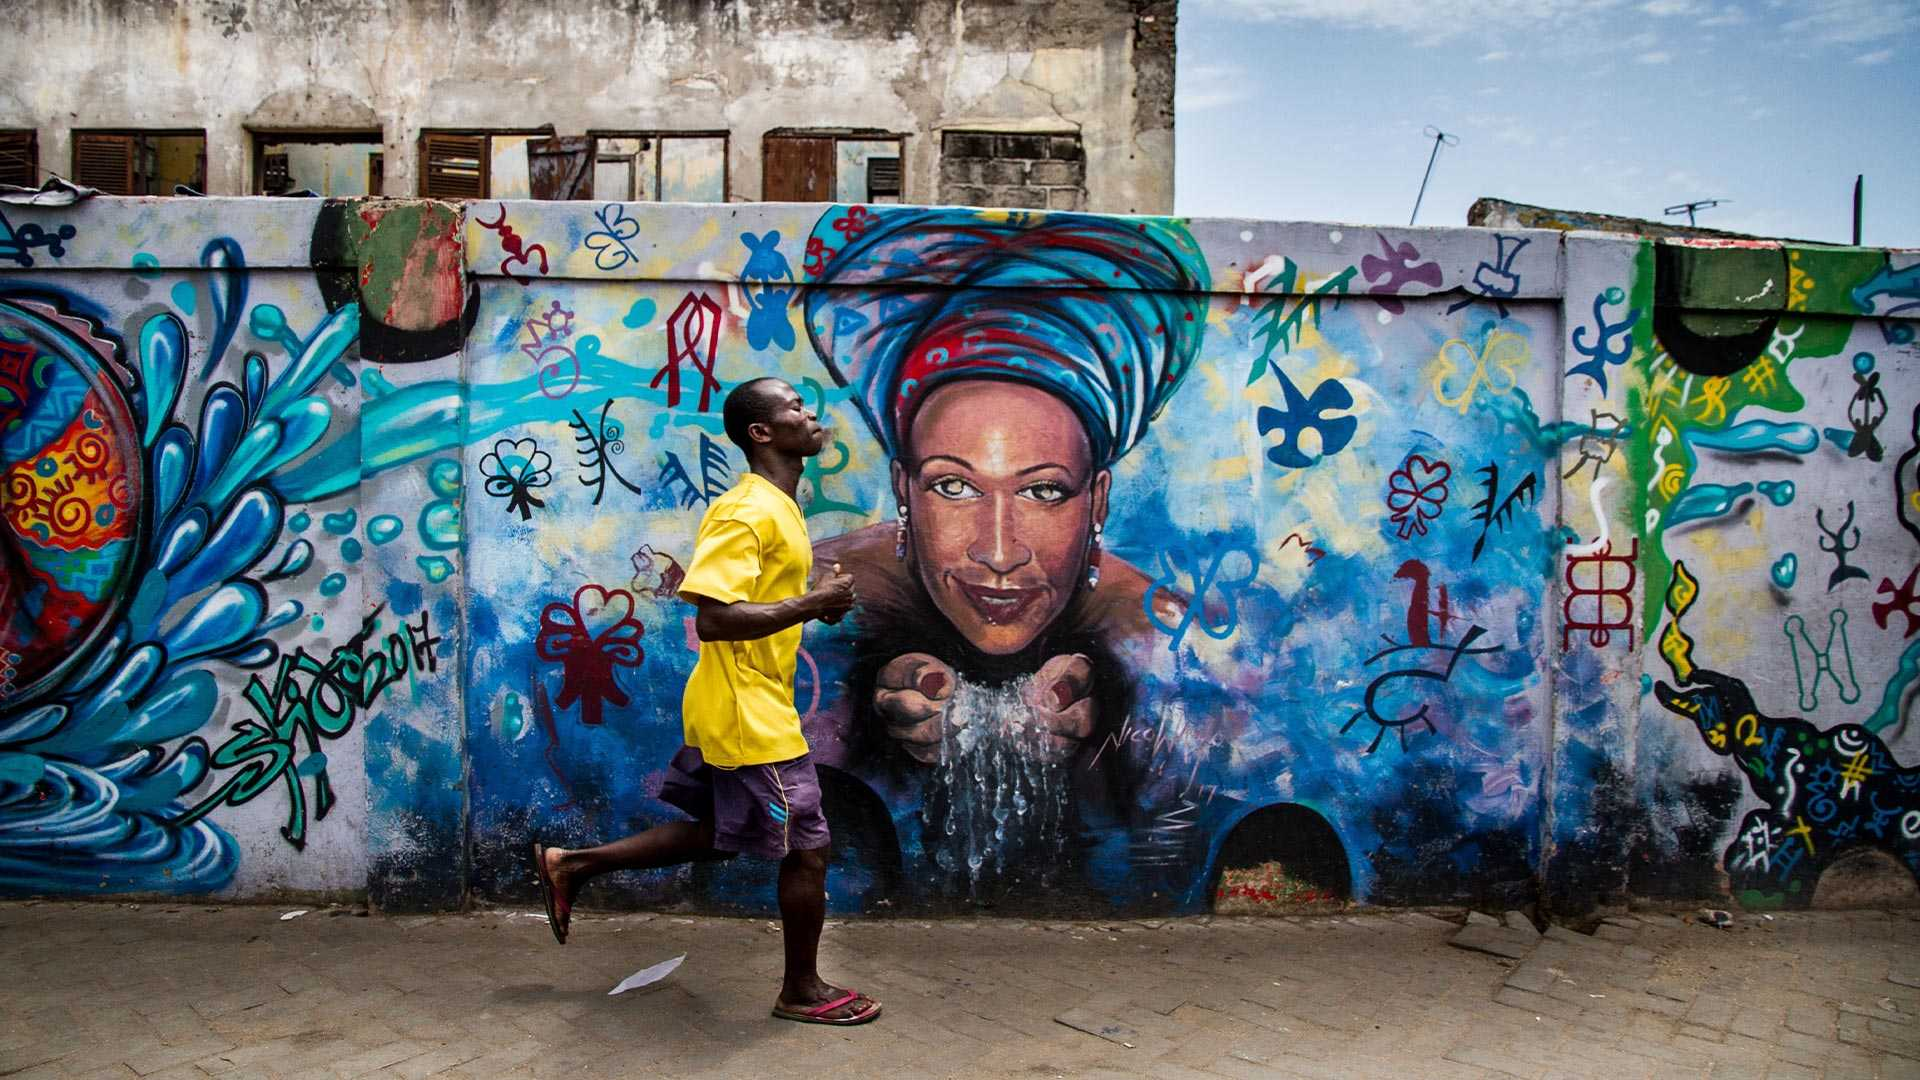 A man in Ghana running in the street in front of a wall painted with urban art